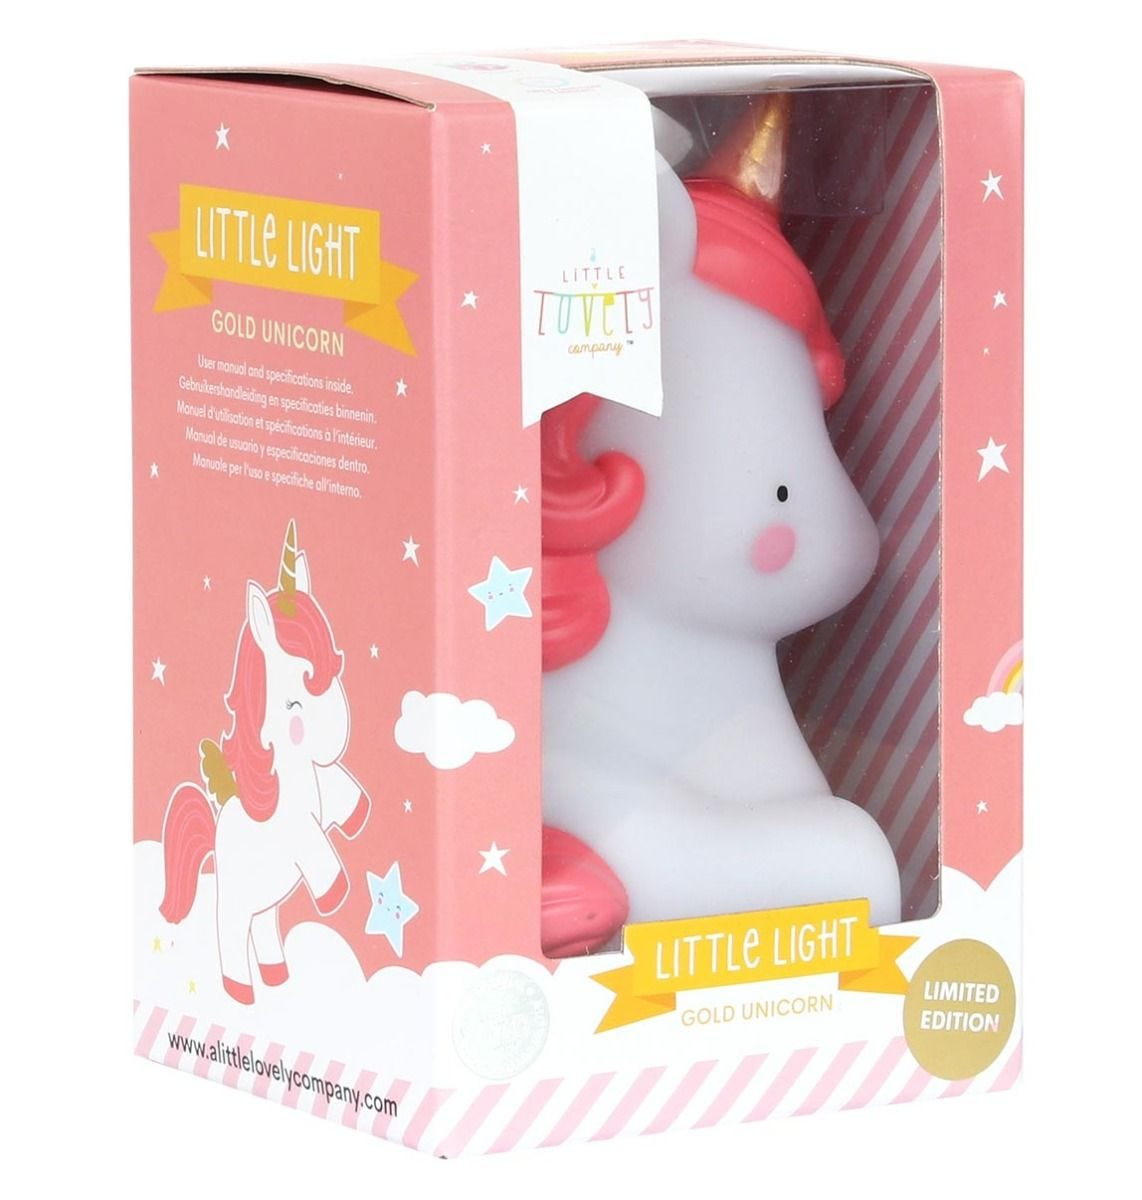 Mini unicorn light gold